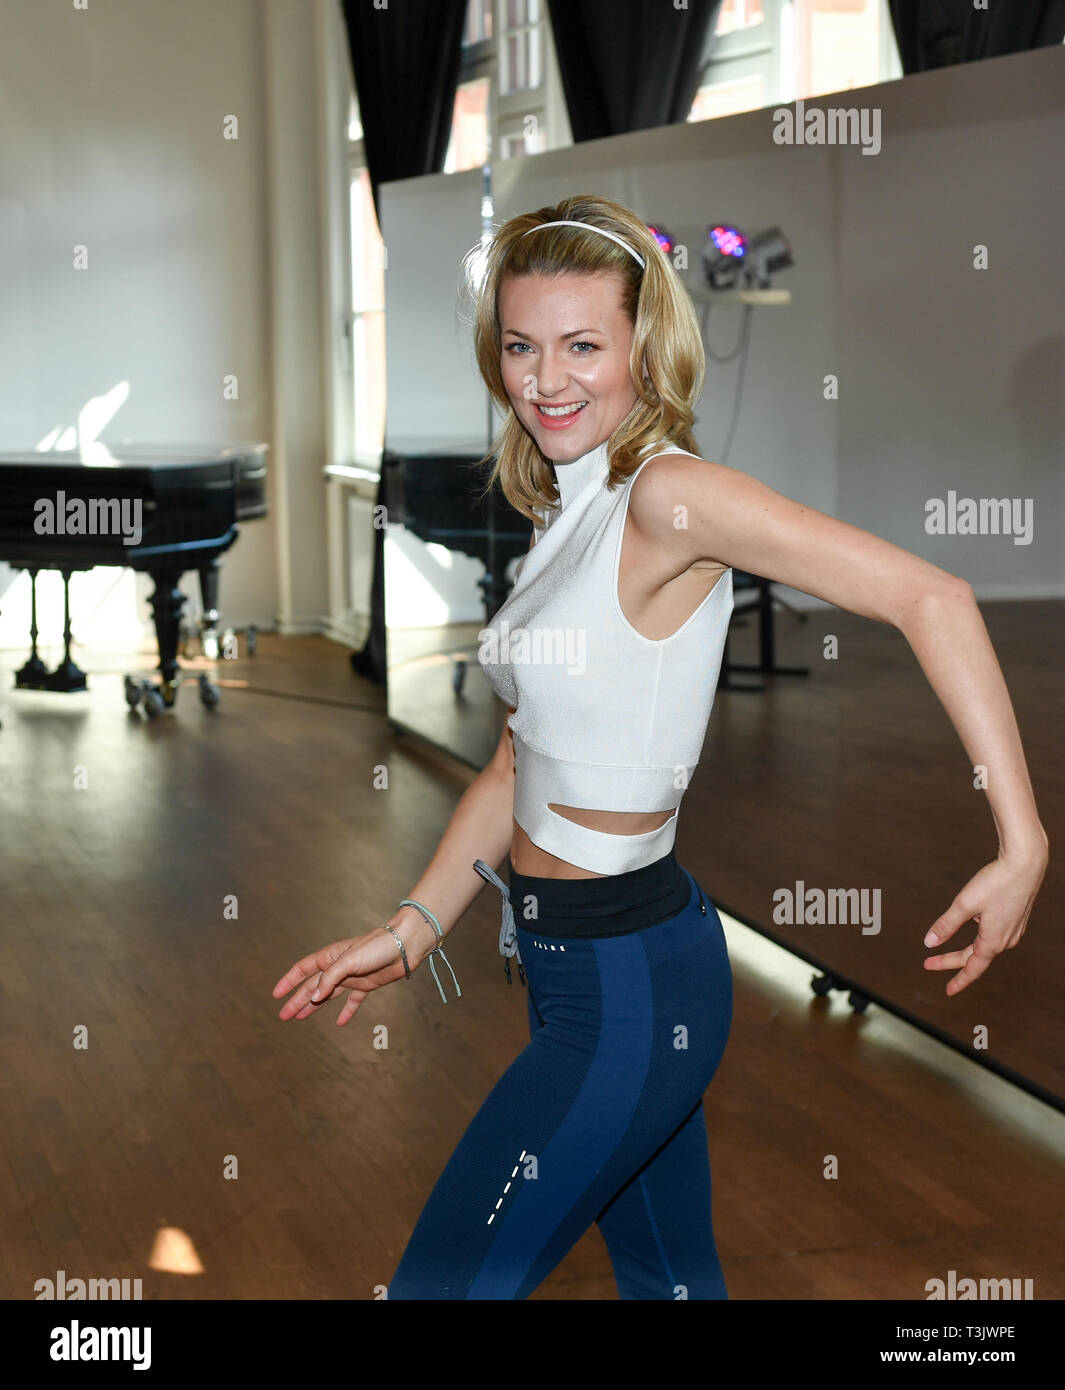 berlin deutschland 10 apr 2019 ella endlich ausbildung f r die rtl tanzshow let 39 s dance an. Black Bedroom Furniture Sets. Home Design Ideas